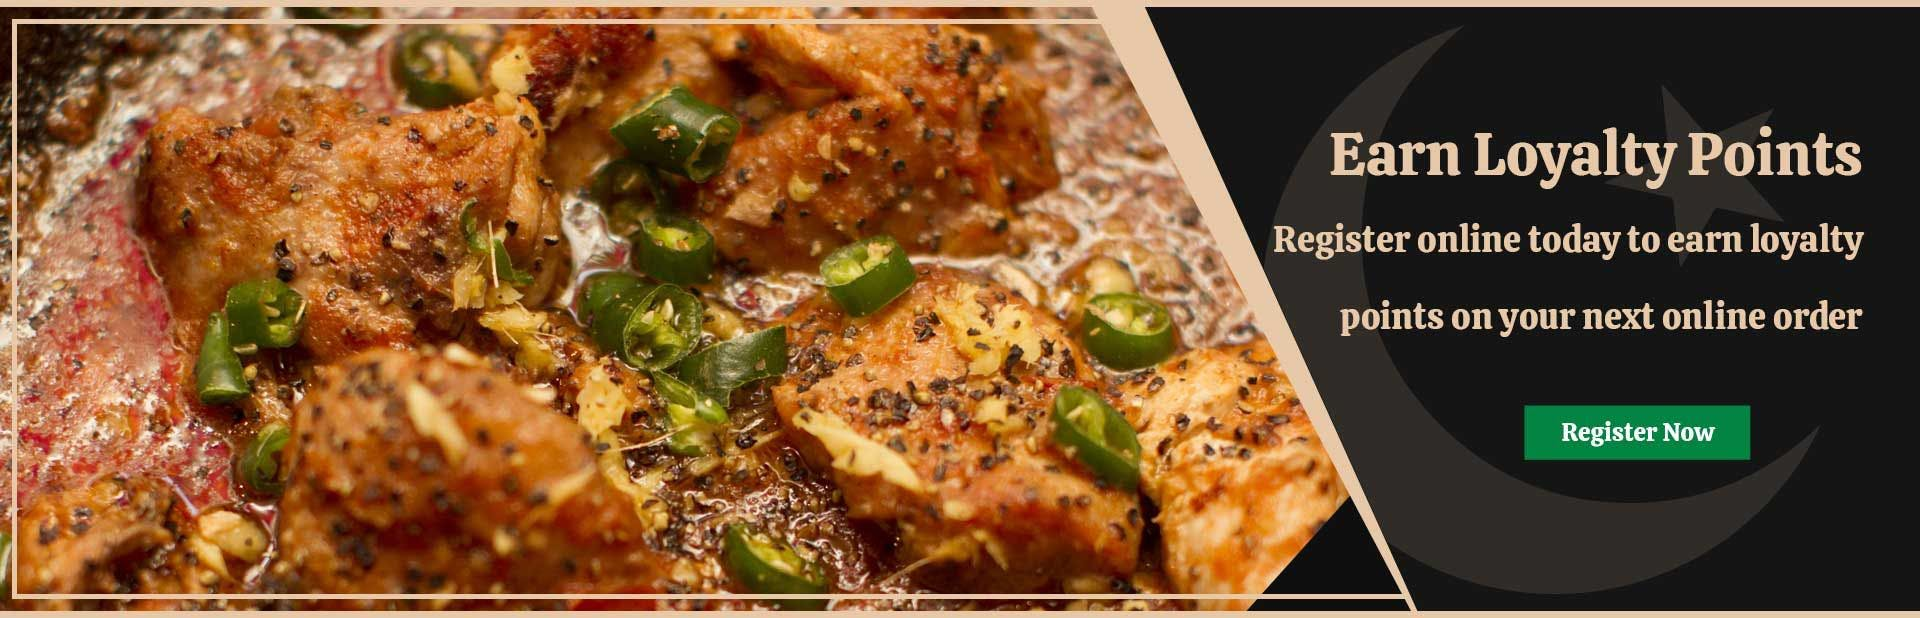 Earn Loyalty Points from Khyber Pass Restaurant